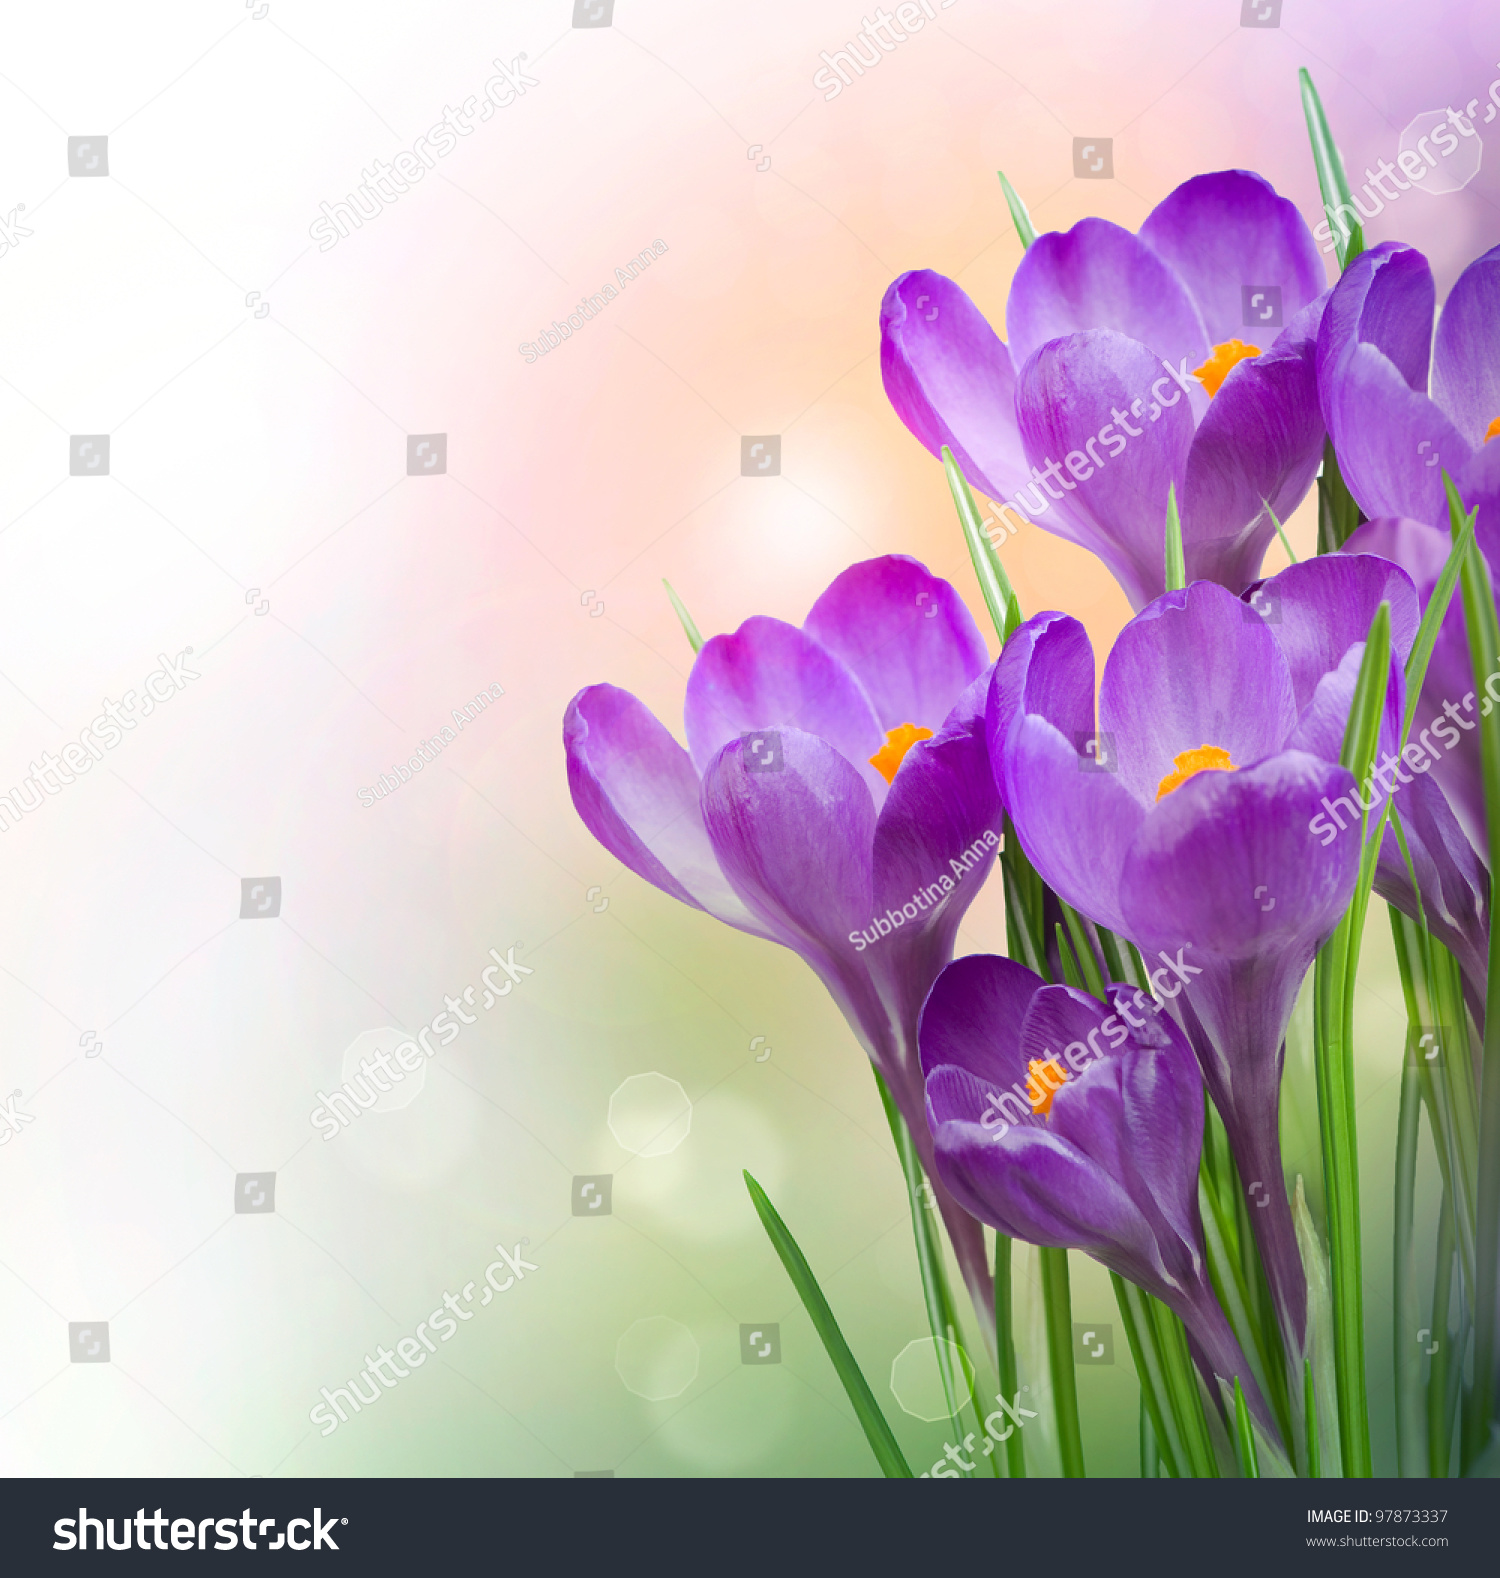 Royalty free crocus spring flowers 97873337 stock photo avopix crocus spring flowers 97873337 mightylinksfo Images